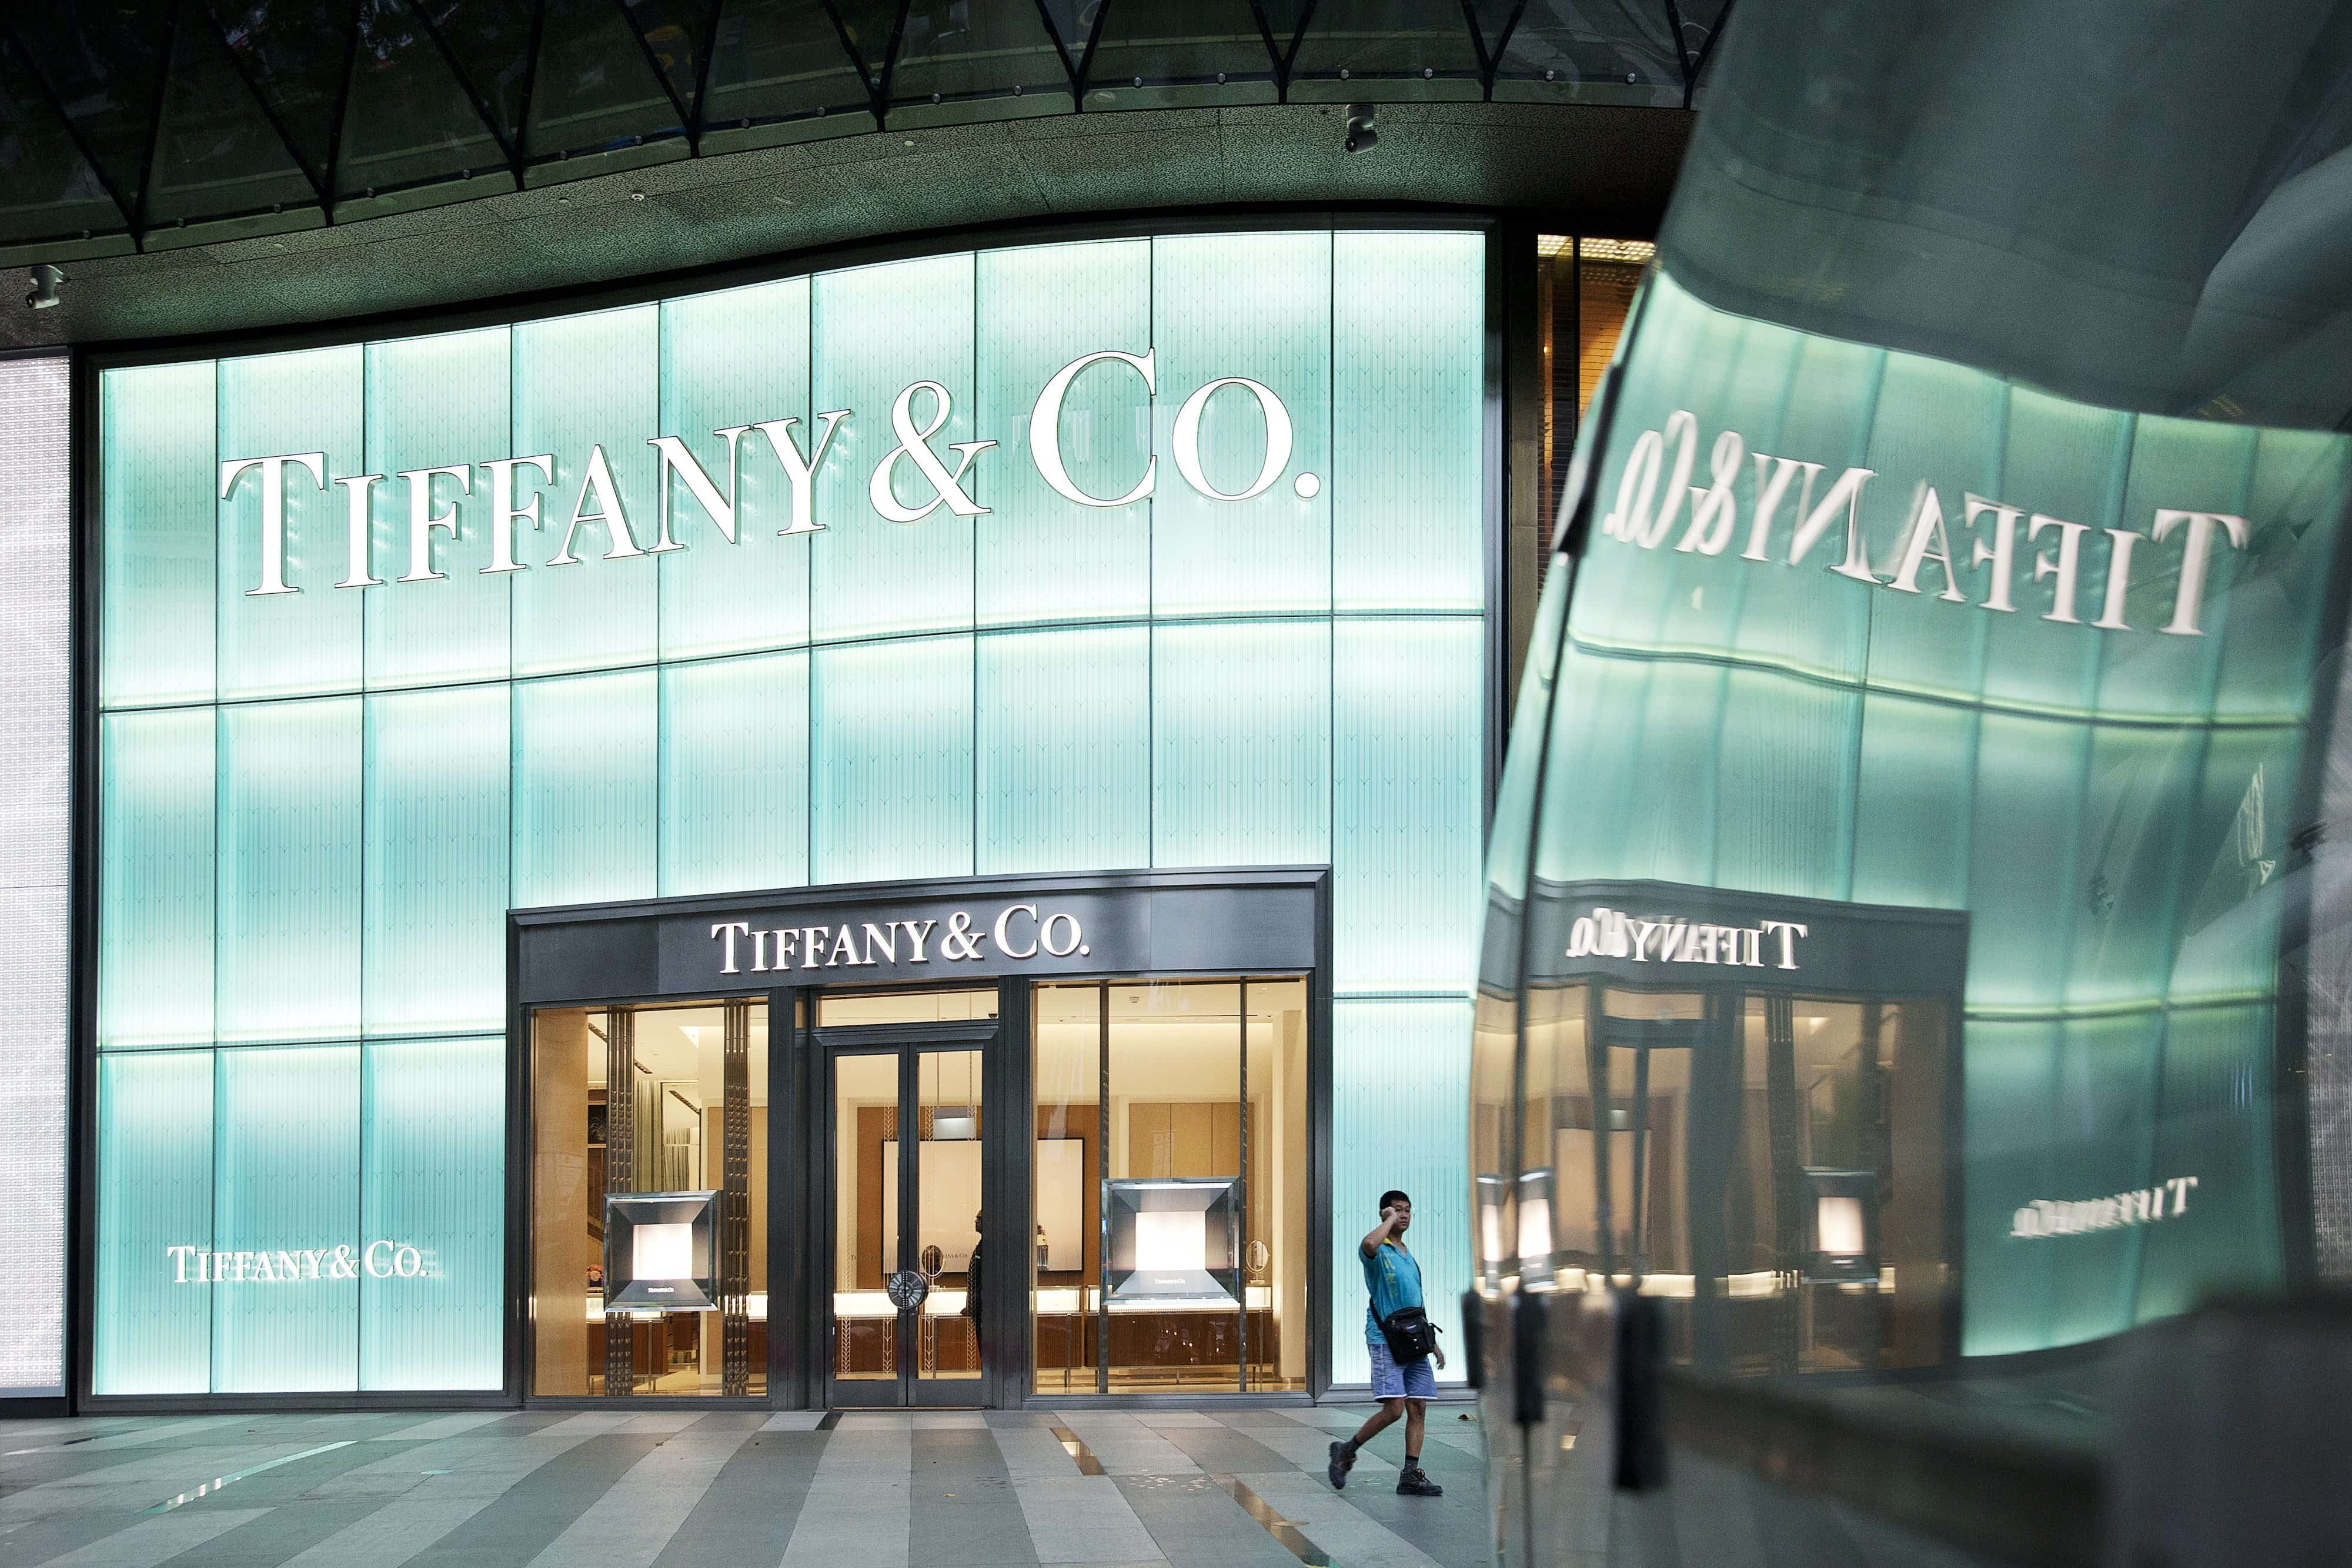 Tiffany's ventures into Men's jewellery to conquer emerging market